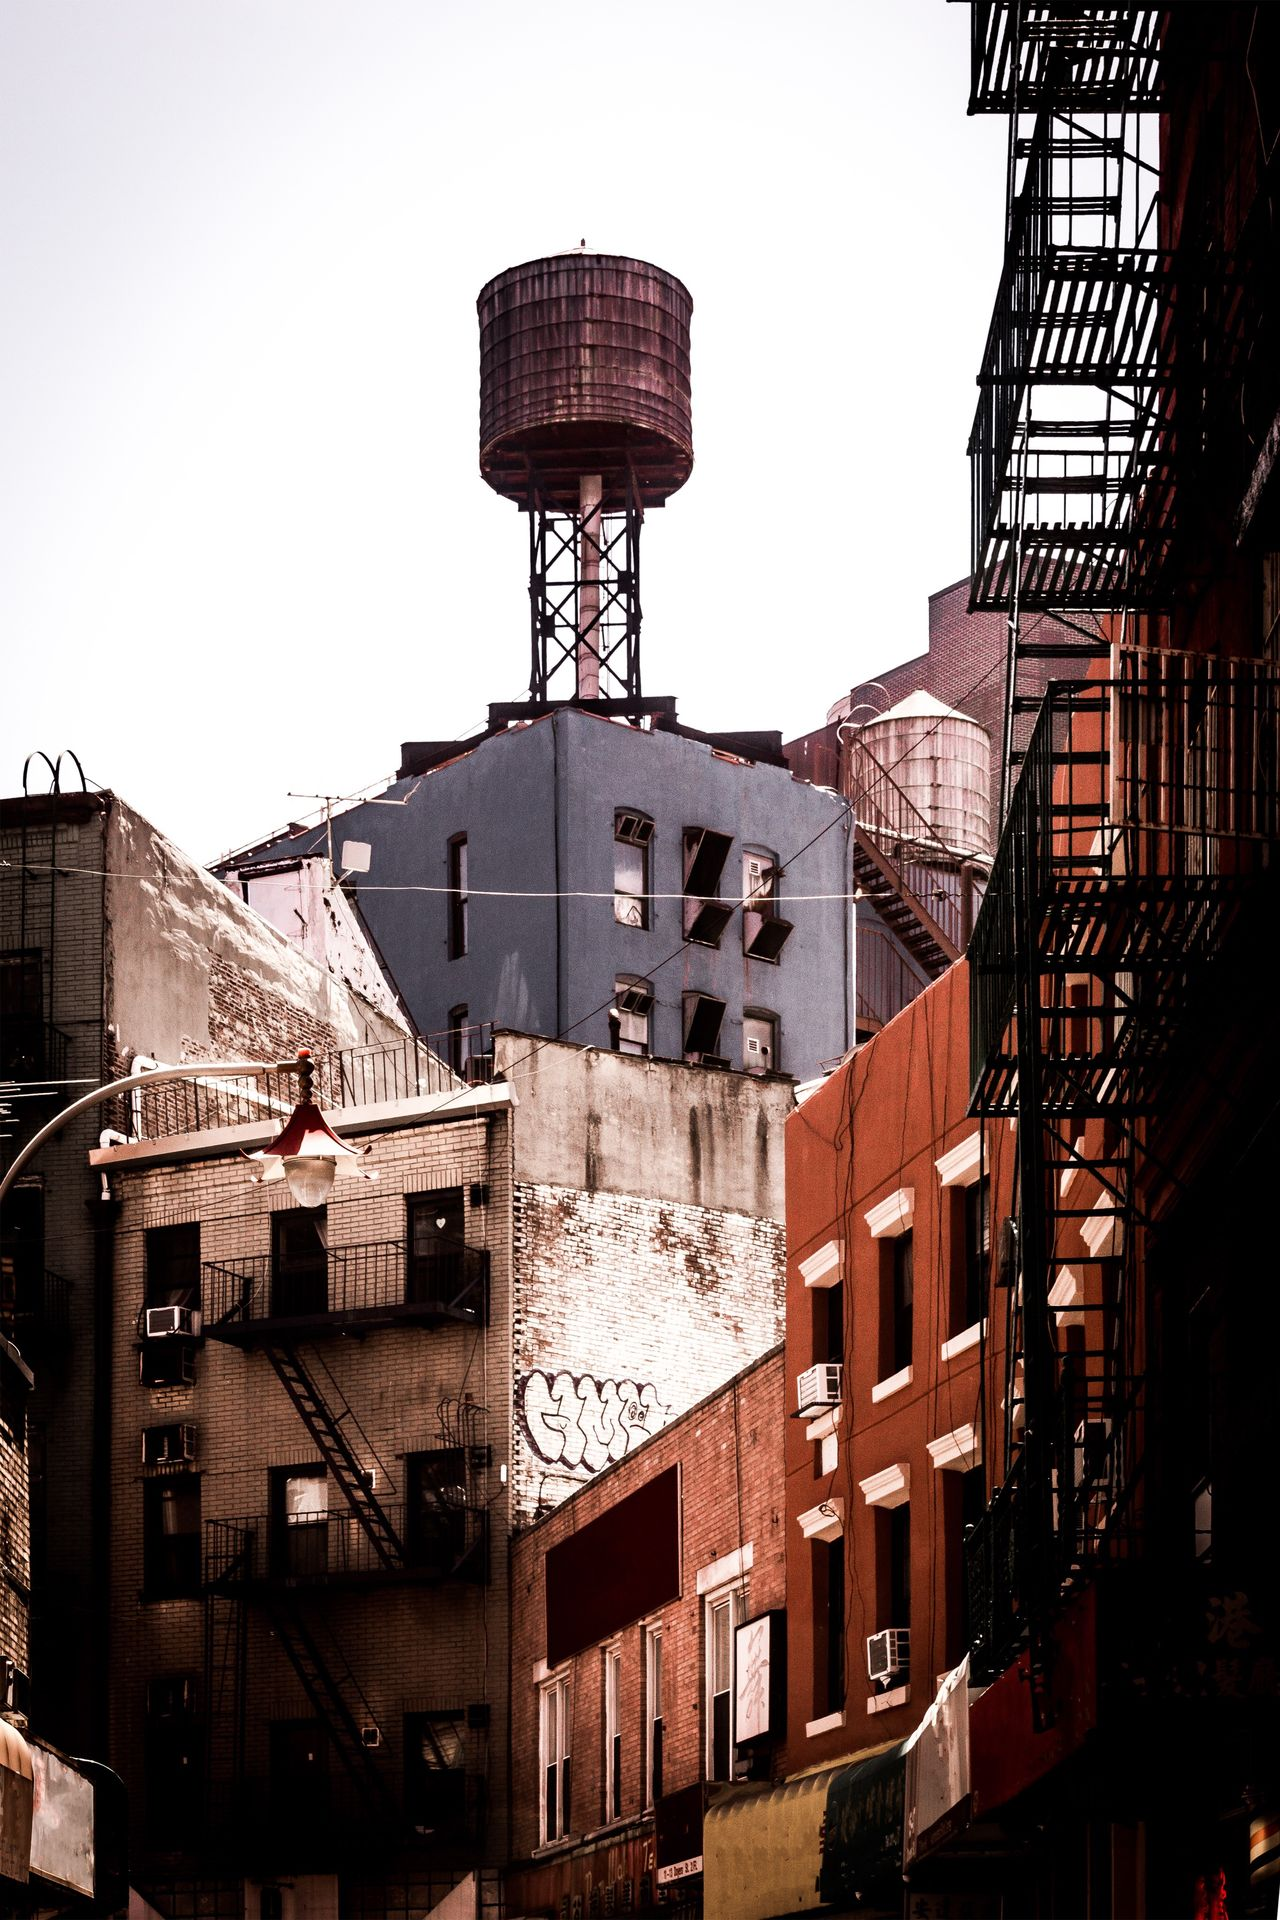 Architecture Building Exterior Built Structure No People Outdoors Day Clear Sky City Sky Cityscape City Life Downtown District Water Tower - Storage Tank Water Tower New York